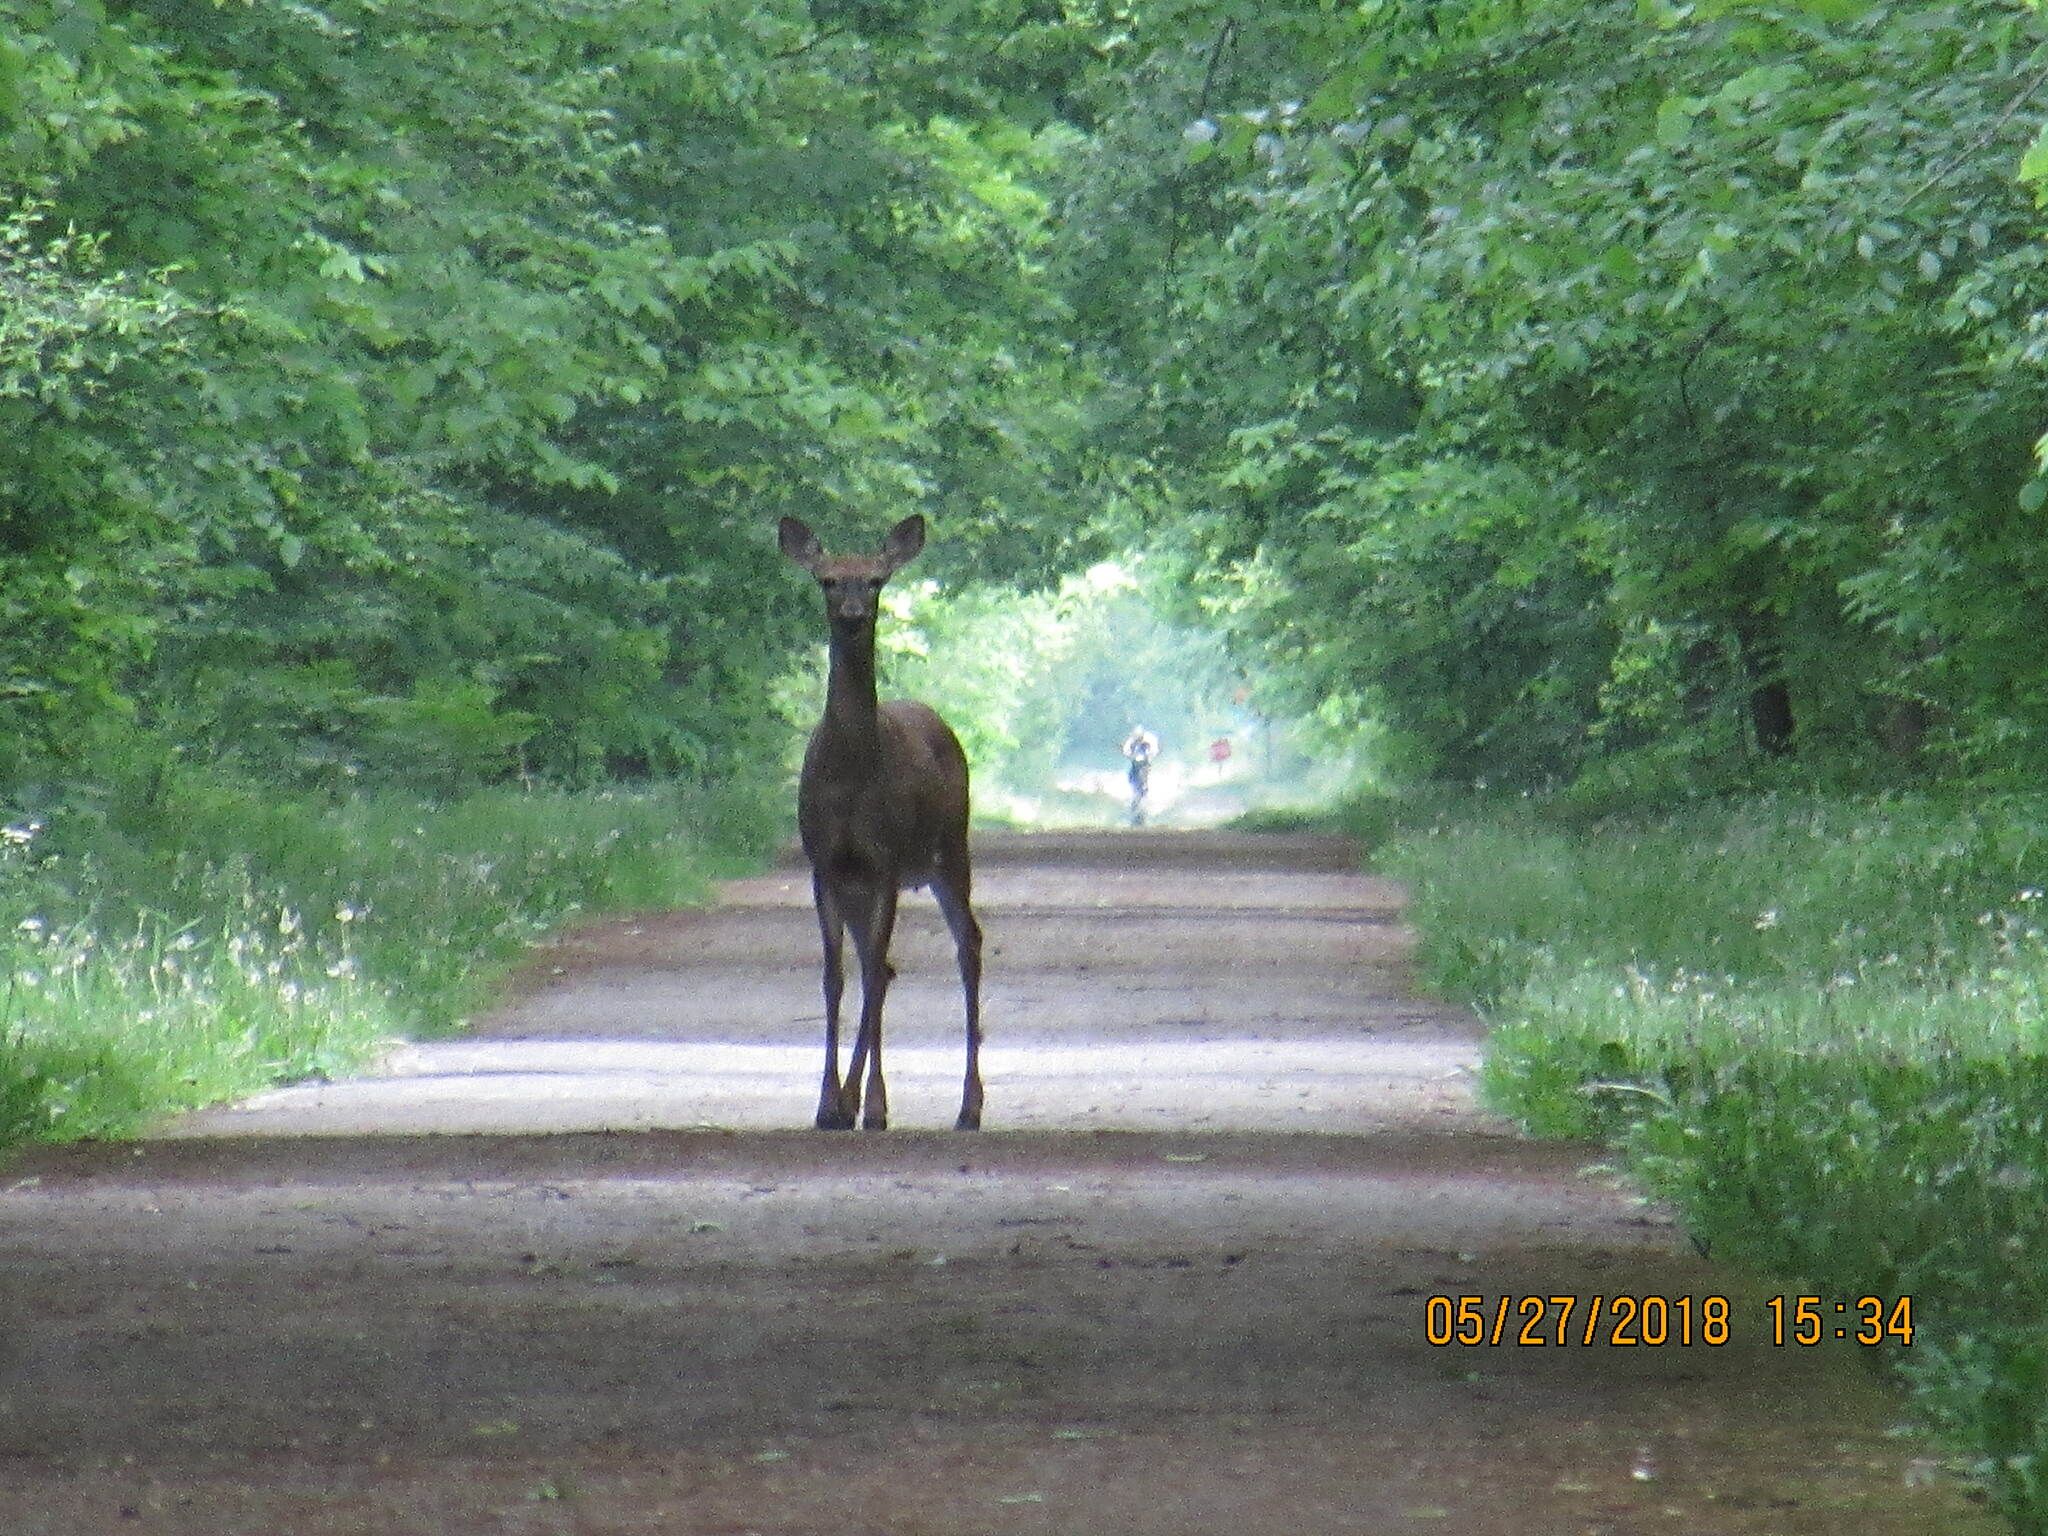 Western Reserve Greenway Deer in trail near Rock Creek Very relaxed about bikers